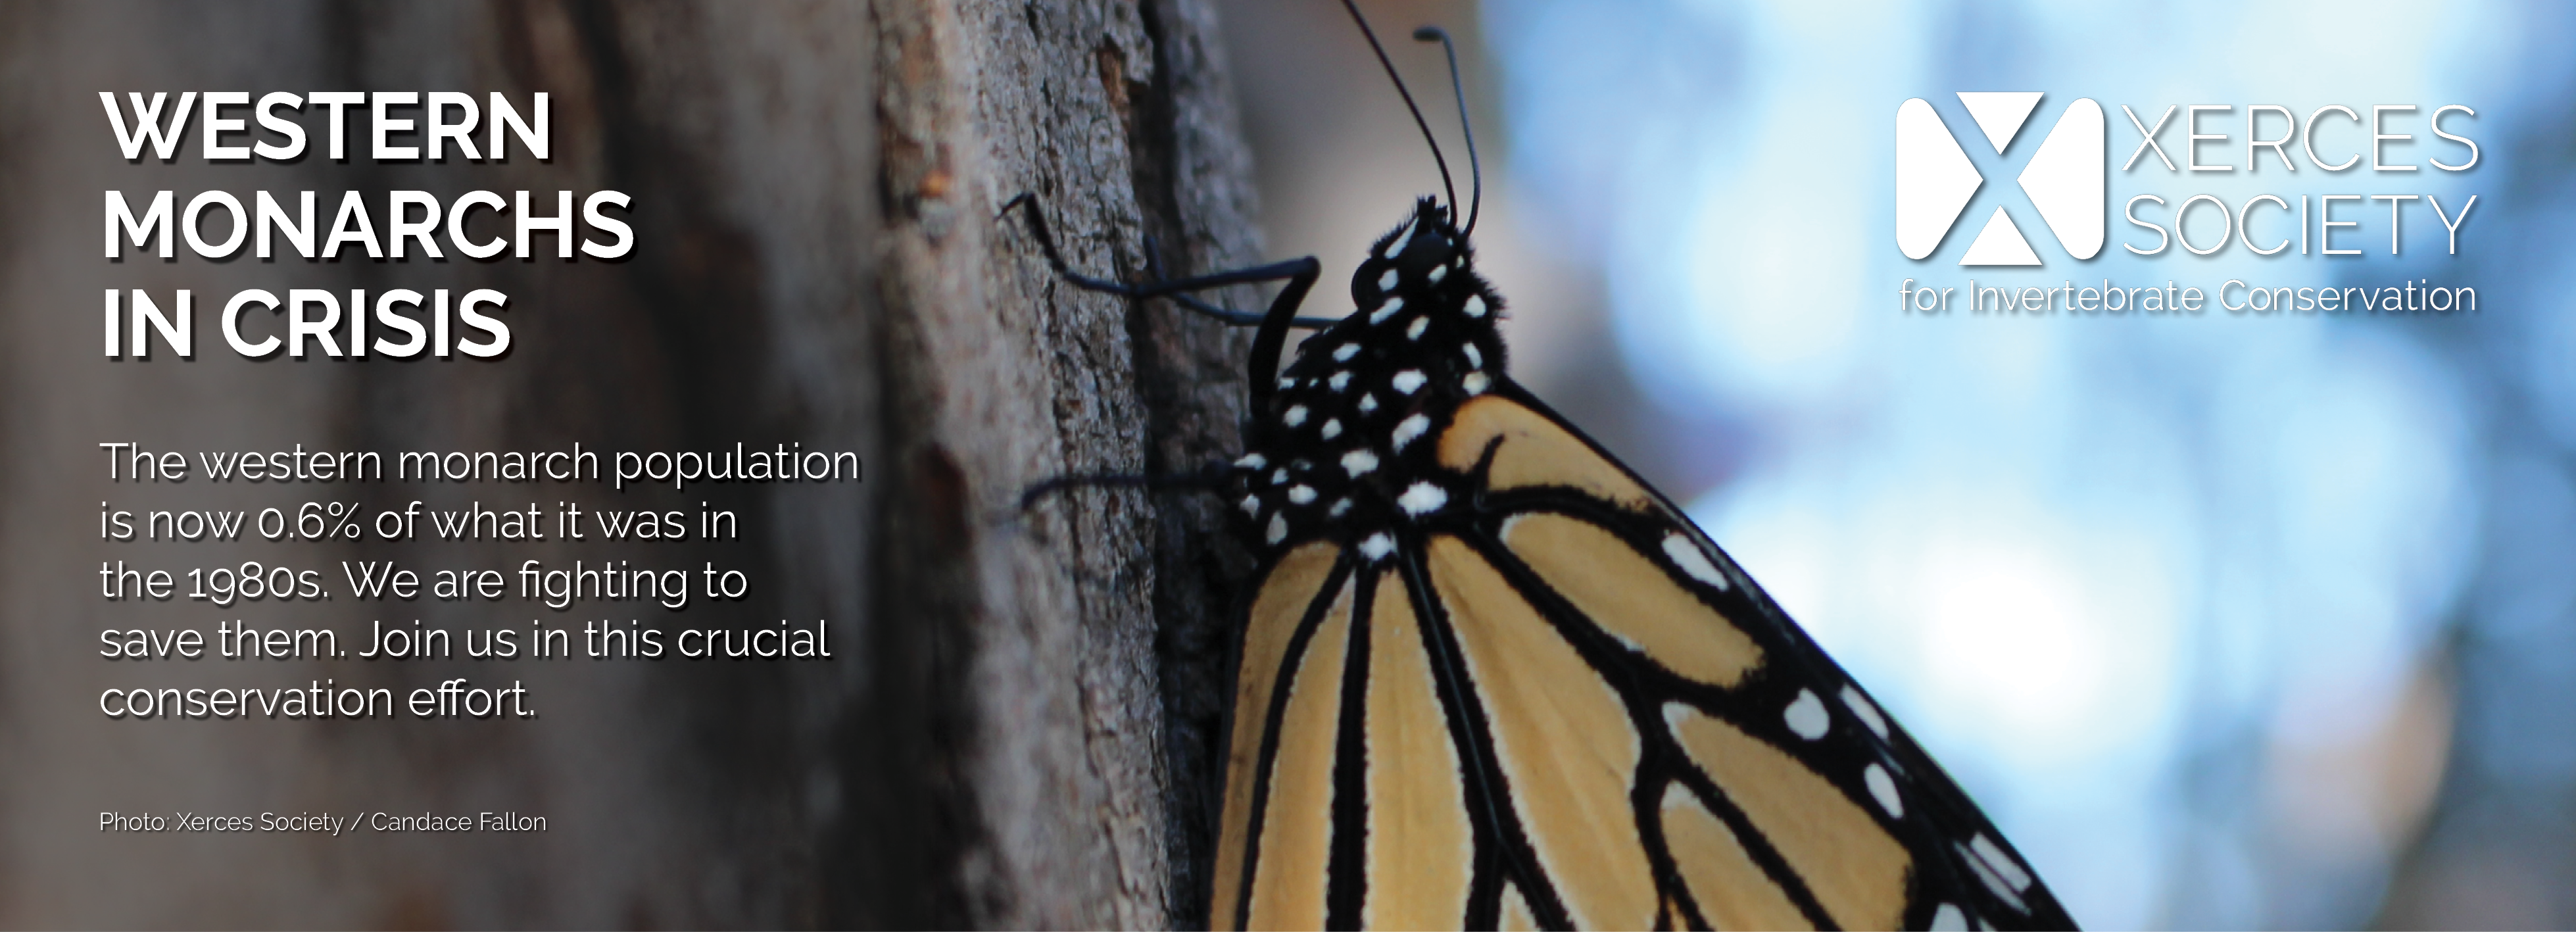 This banner, featuring a monarch clutching a tree trunk in a dimly-lit scene, says: Western Monarchs in Crisis: The western monarch population is now 0.6% of what it was in the 1980s. We are fighting to save them. Join us in this crucial conservation effort.